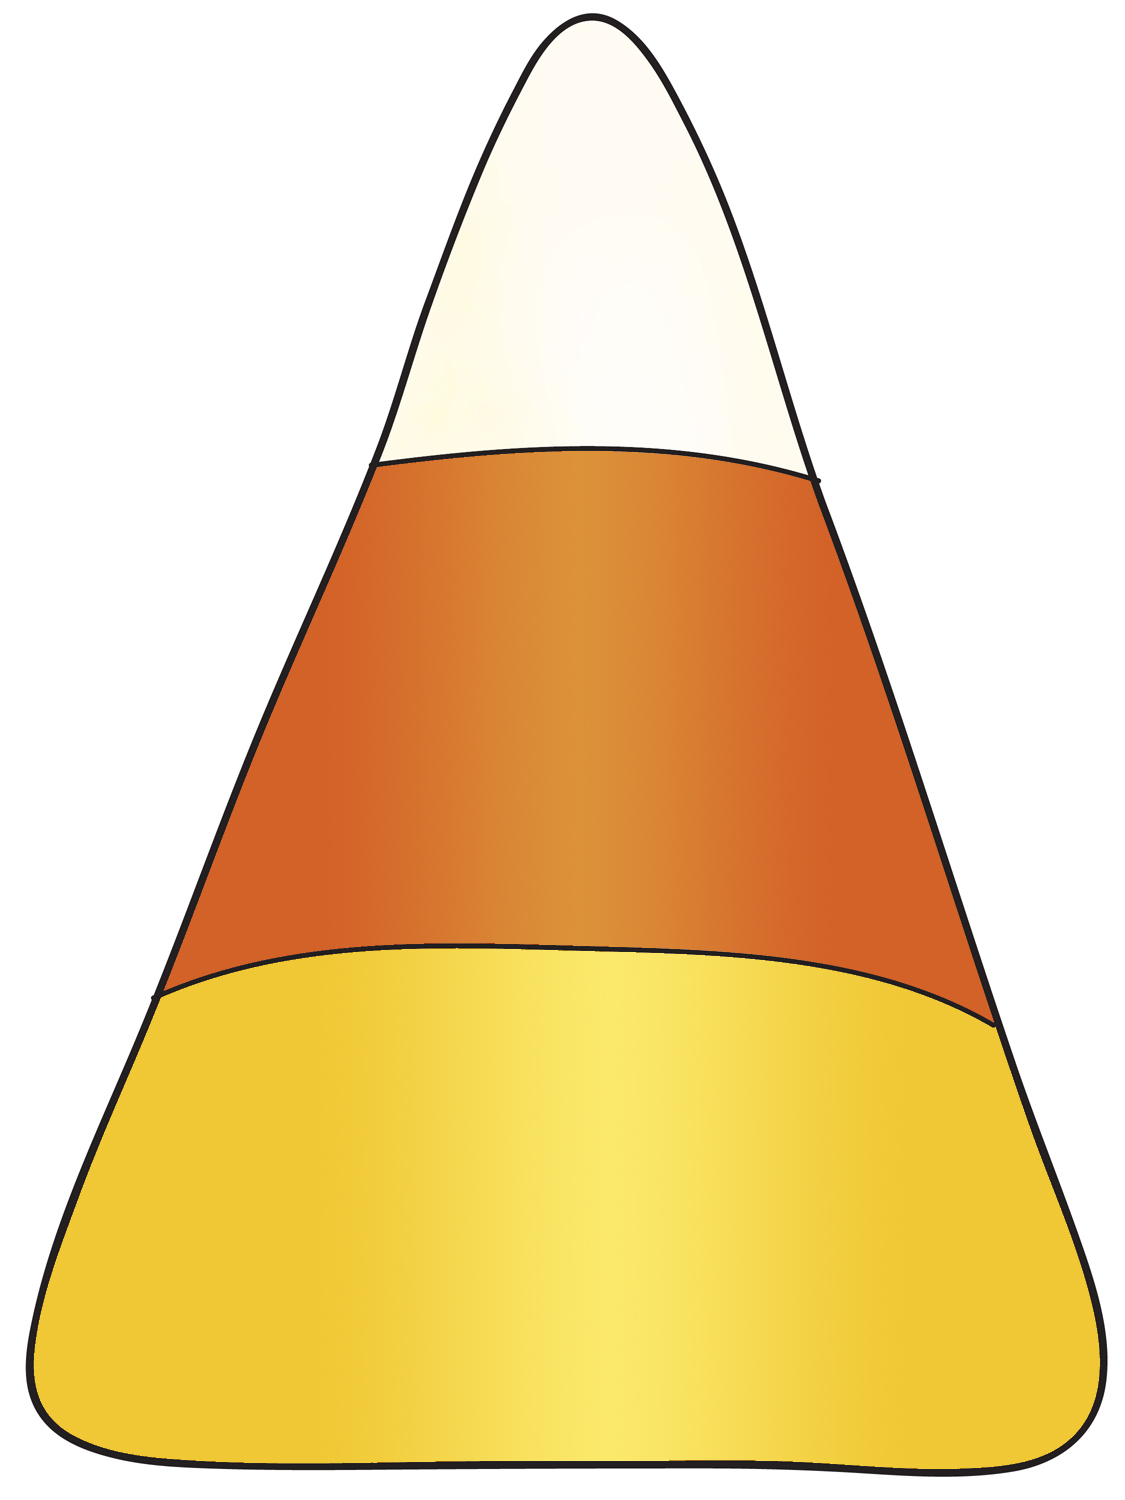 Candy corn clipart 3